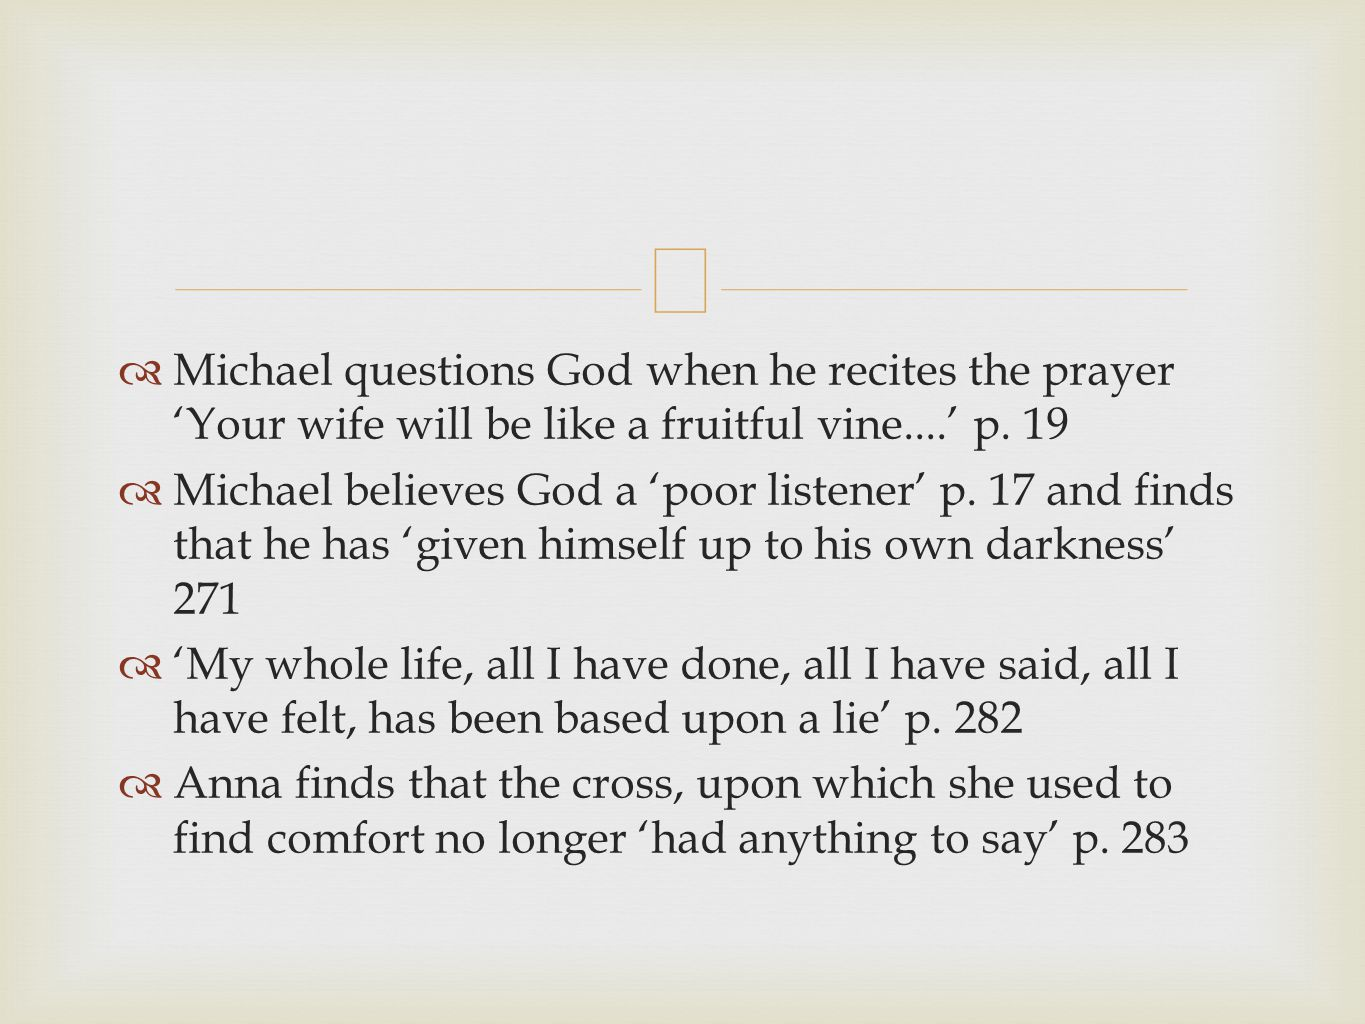 Michael questions God when he recites the prayer Your wife will be like a fruitful vine....